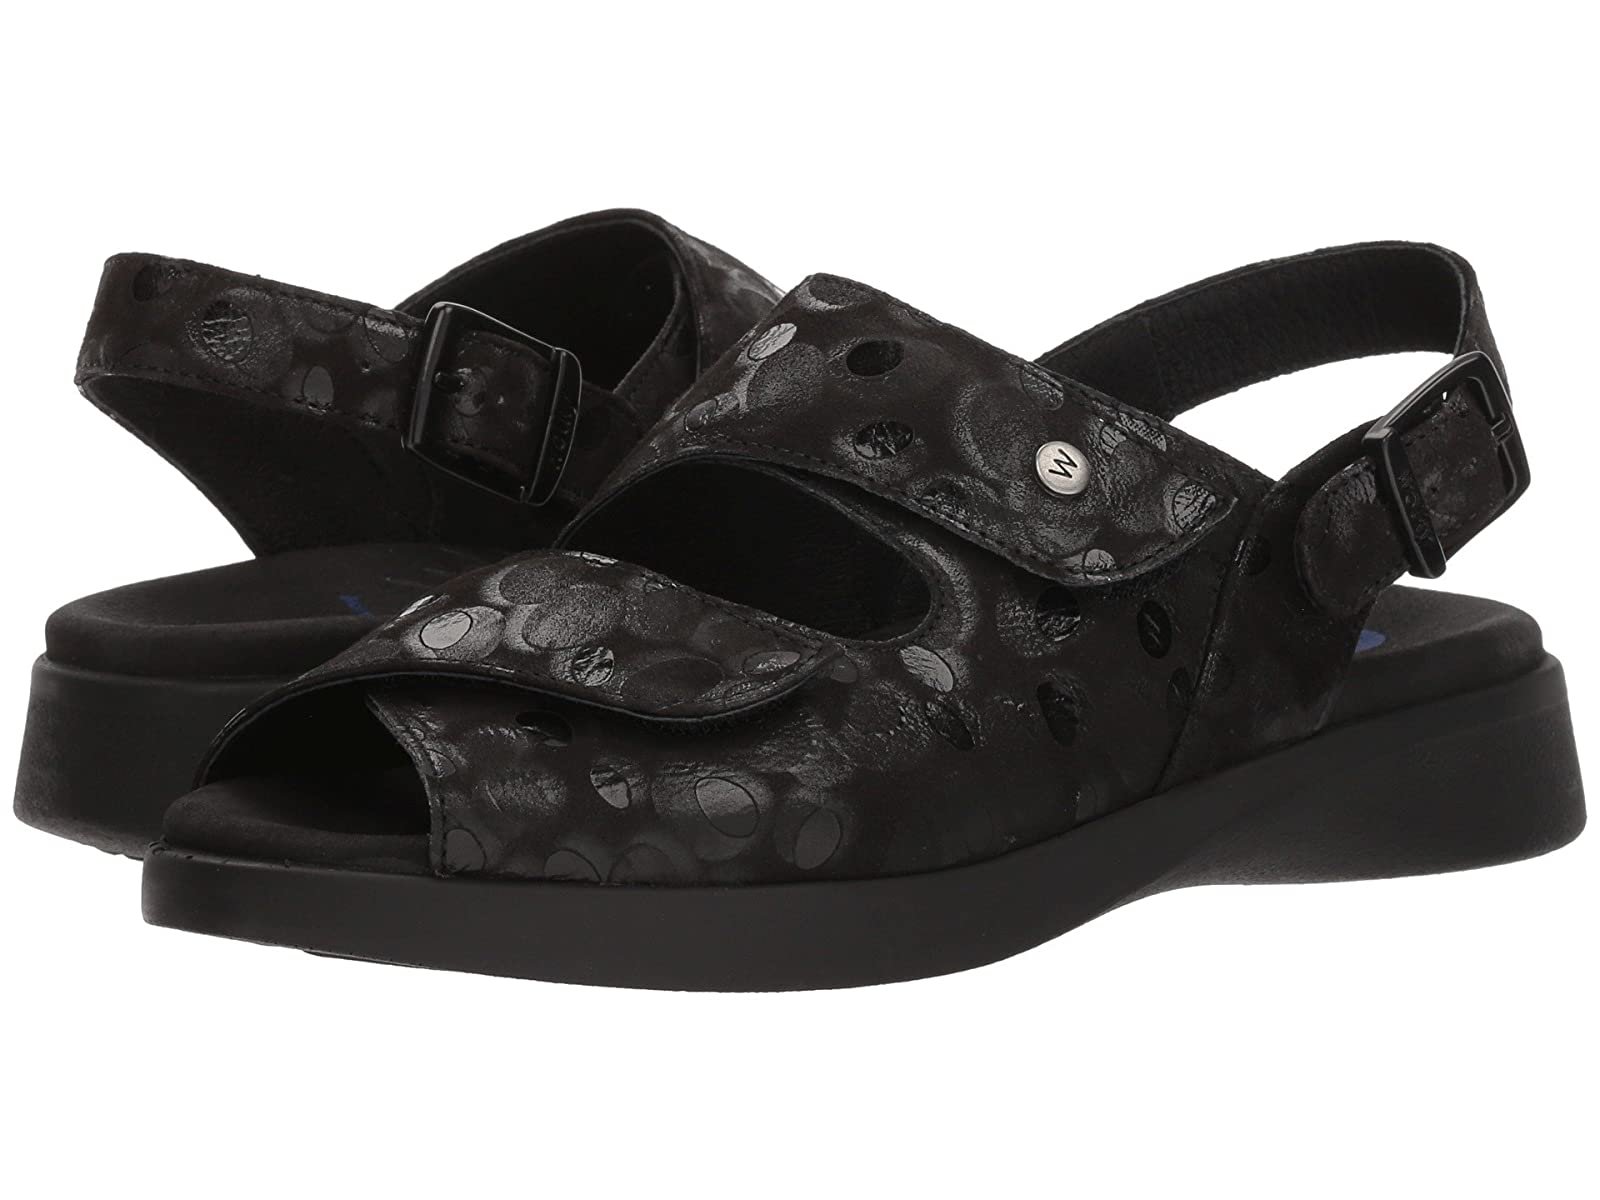 Wolky NimesAtmospheric grades have affordable shoes